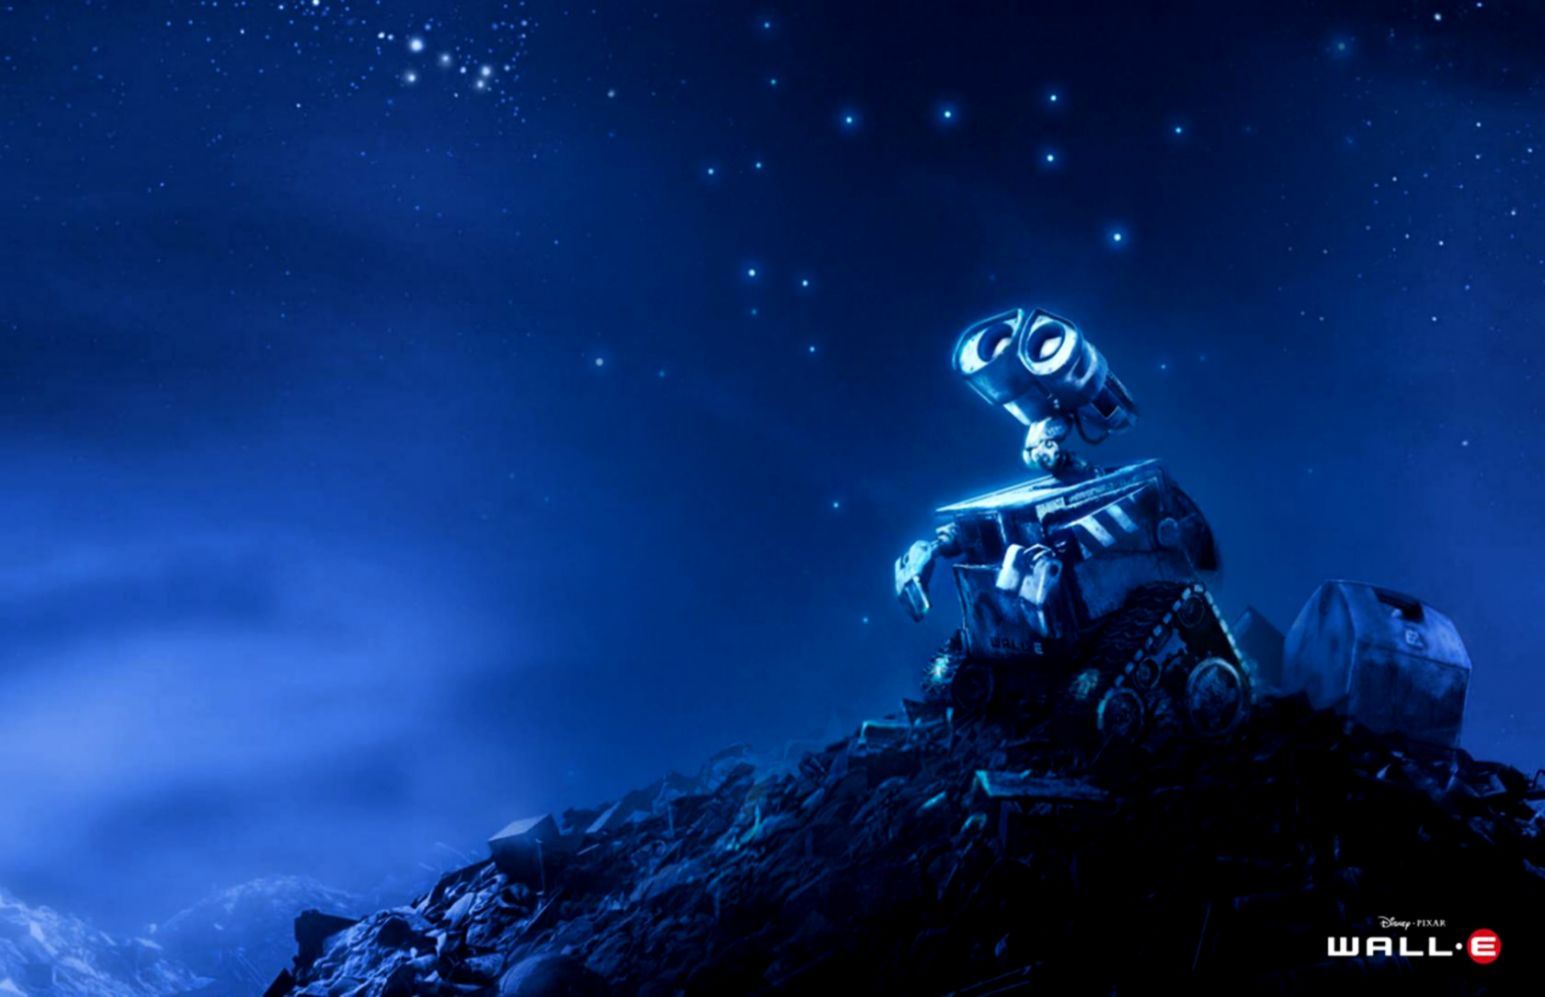 32 <b>Pixar Wallpaper</b>, HD Creative <b>Pixar Wallpapers</b>, Full HD <b>Wallpapers</b>